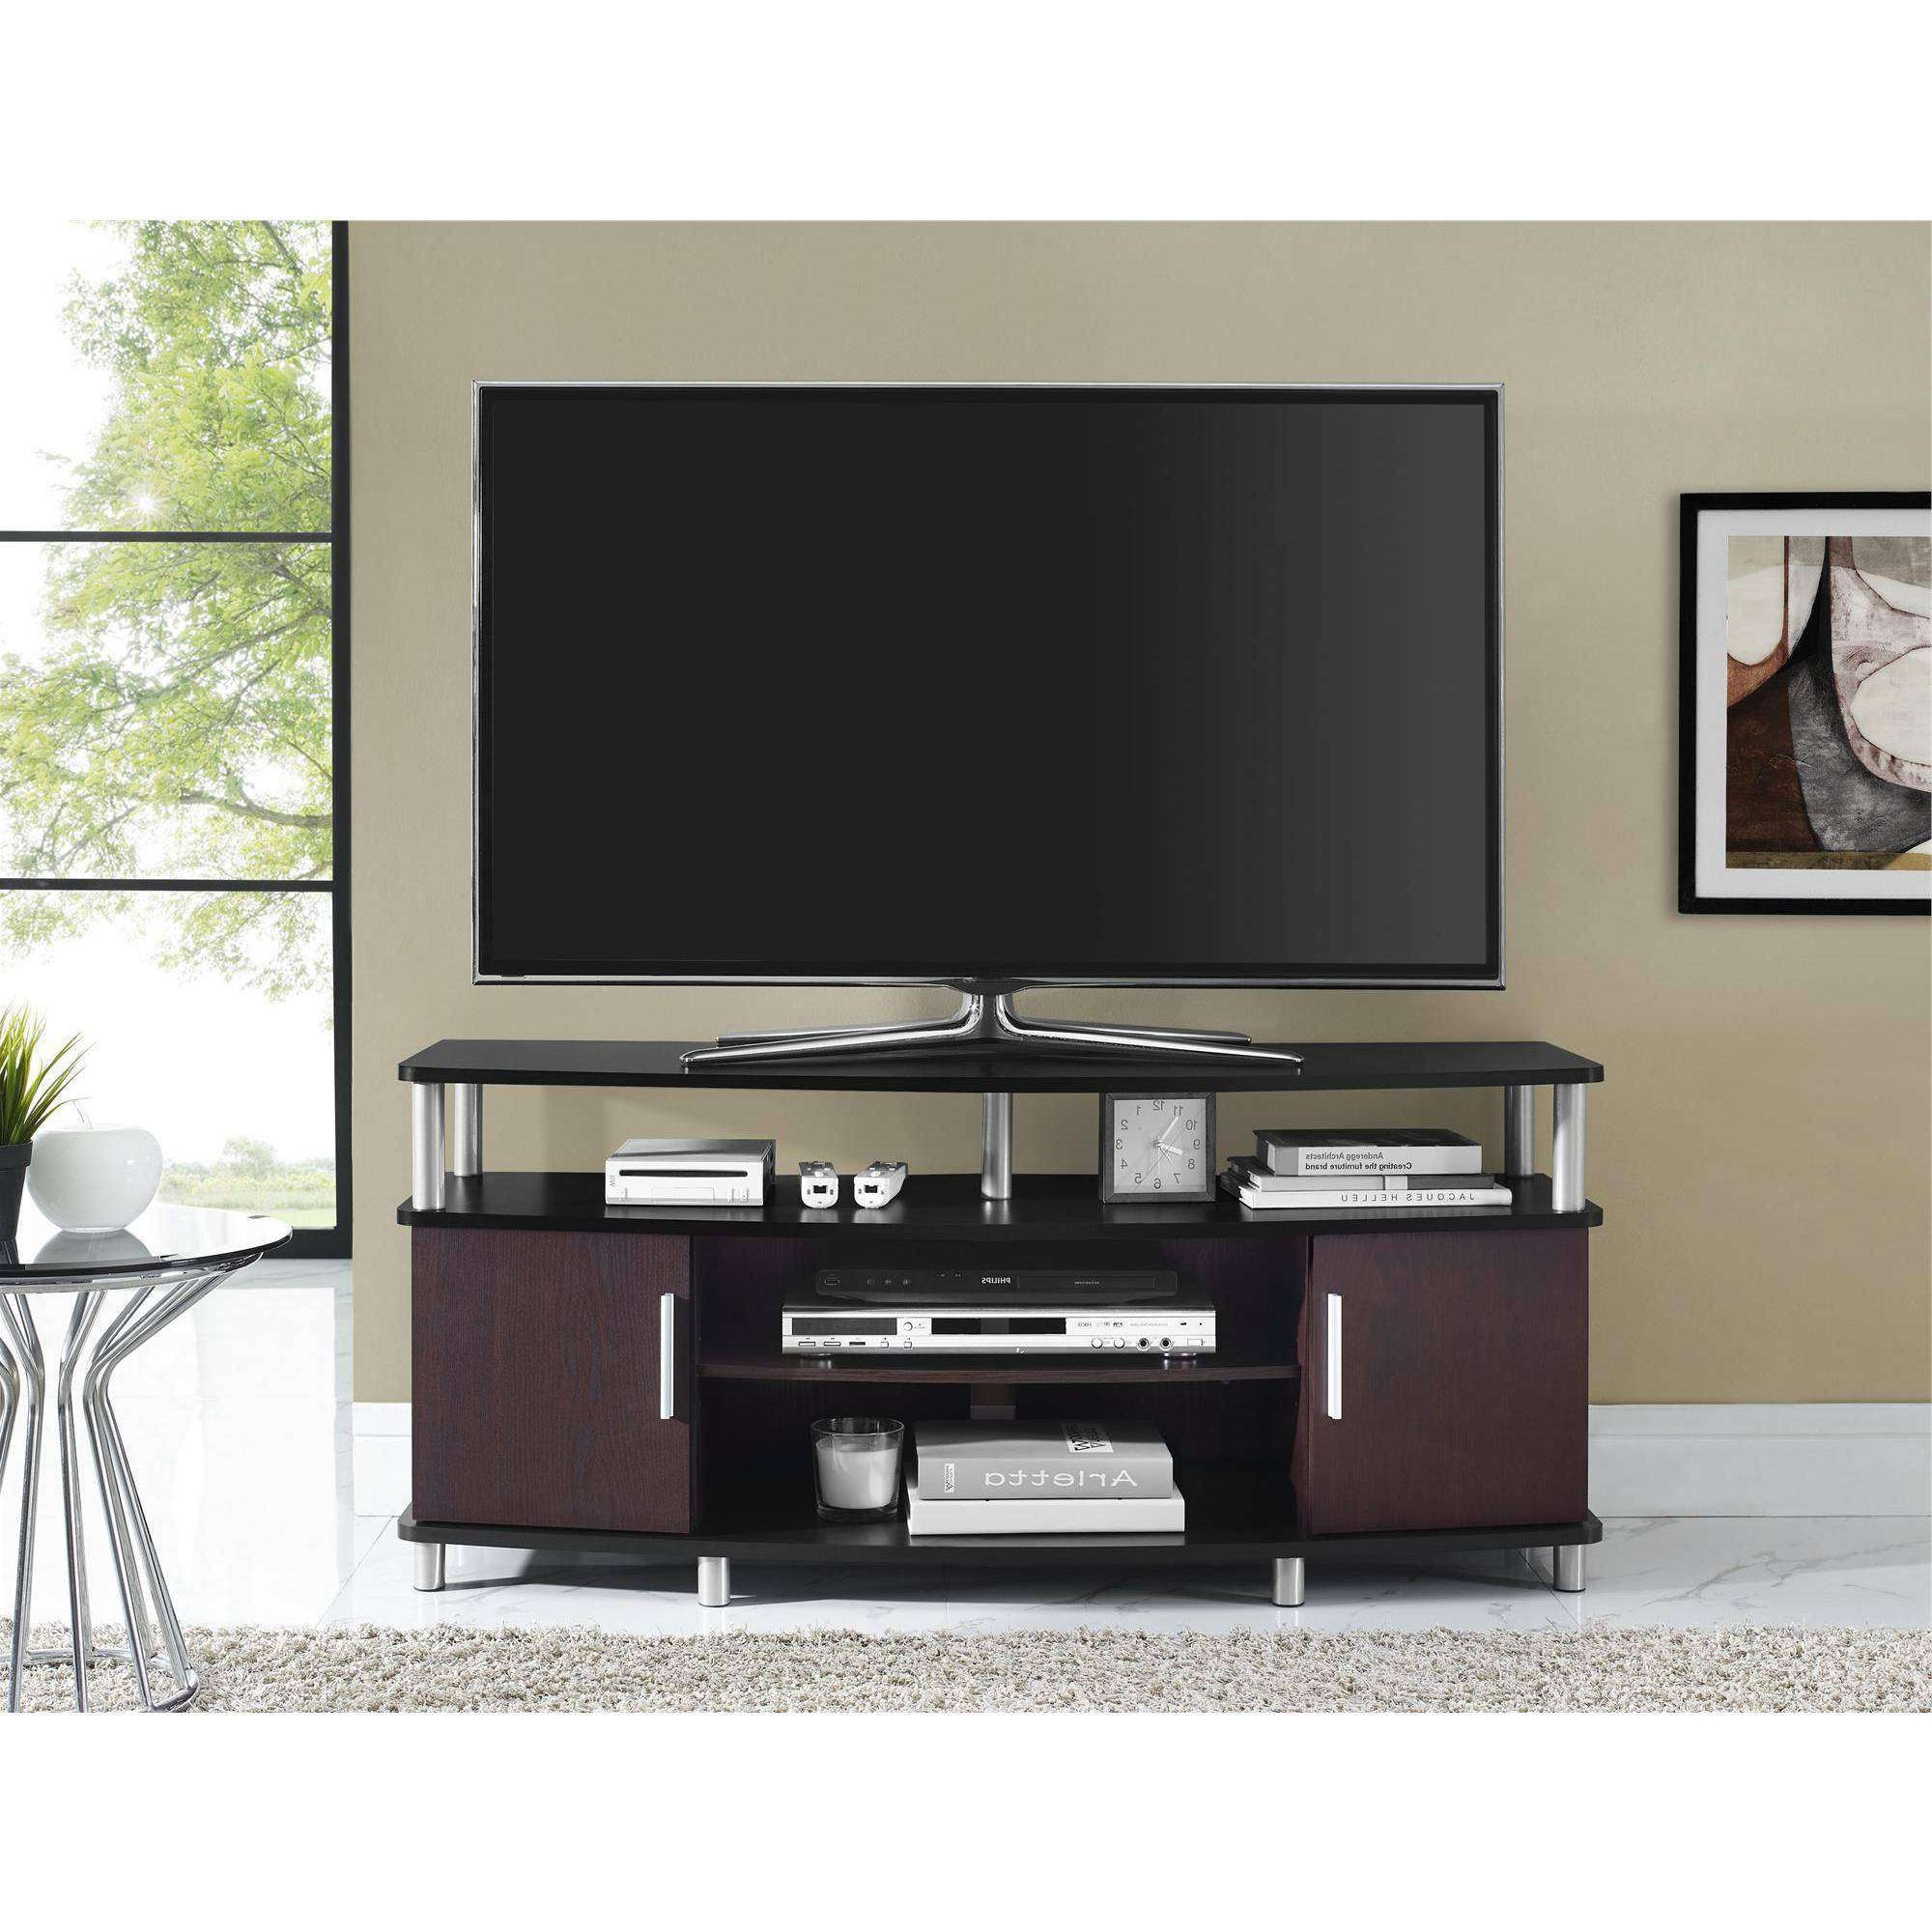 Why The Color Of Your Tv Stand 50 Inches Is Very Important With Regard To Wooden Tv Stands For 50 Inch Tv (View 14 of 15)